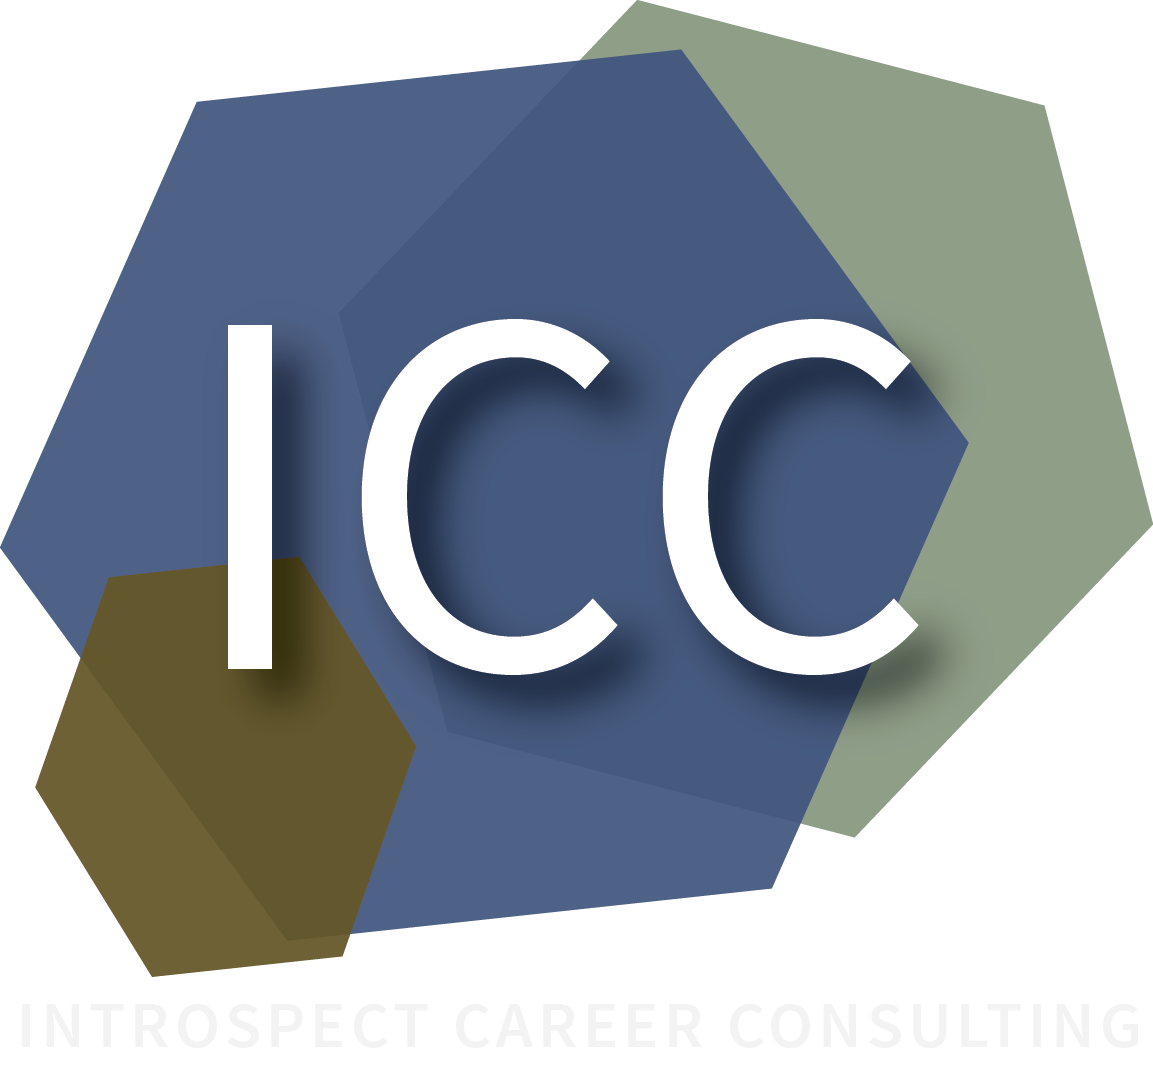 Professional clipart career guidance. Professionals introspect consulting llc